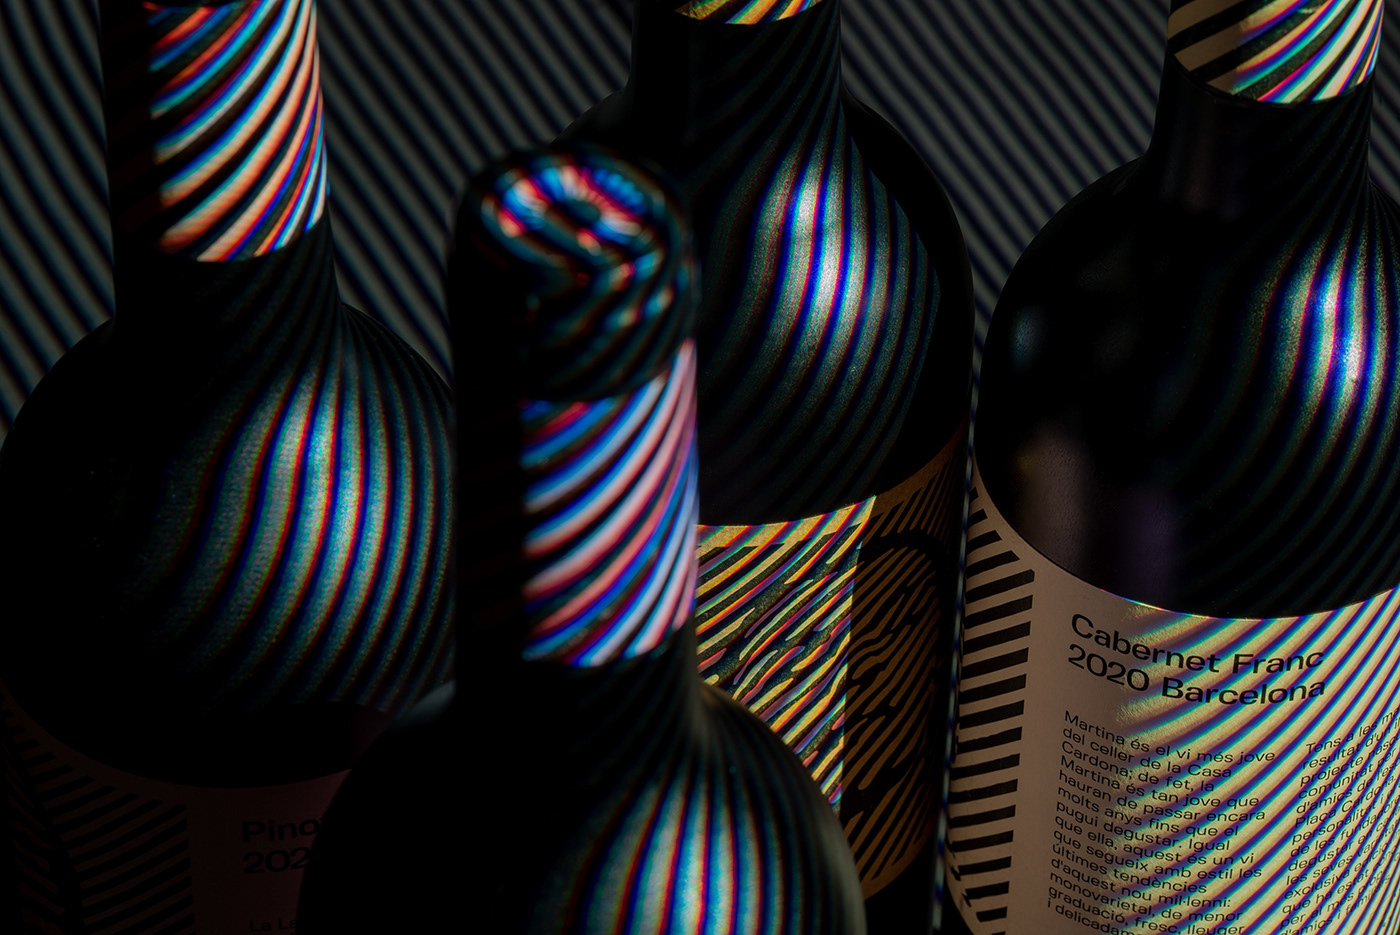 Casa Cardona wines. Group shot with diagonal stripes lighting effects over